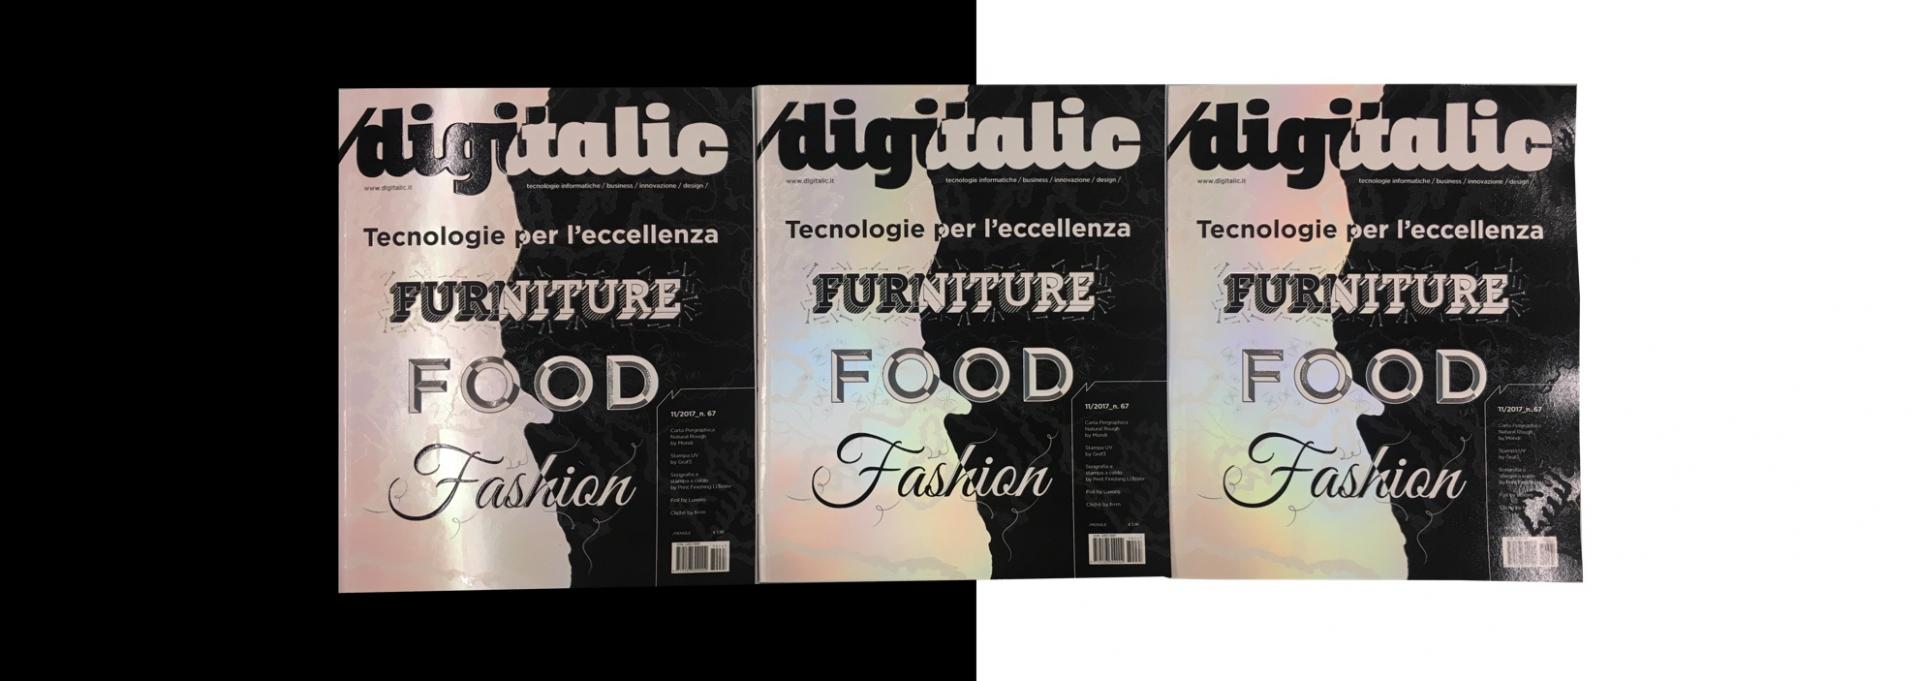 Digitalic n. 67: Furniture, Food, Fashion – Tecnologie per le eccellenze